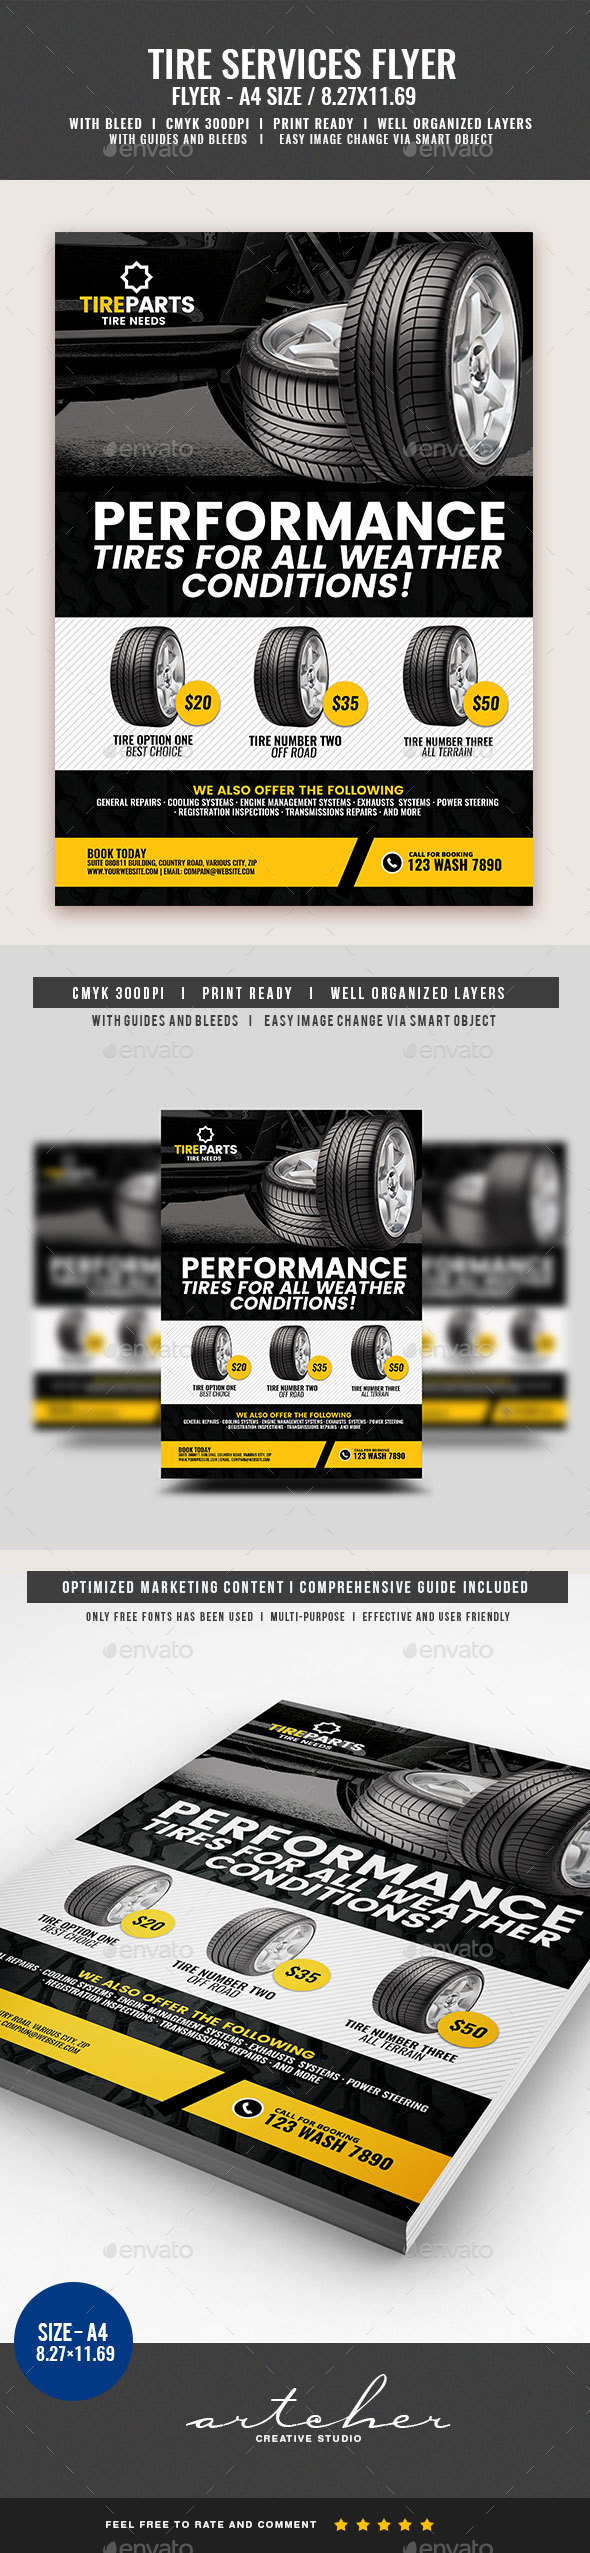 Tire Service Flyer - Commerce Flyers